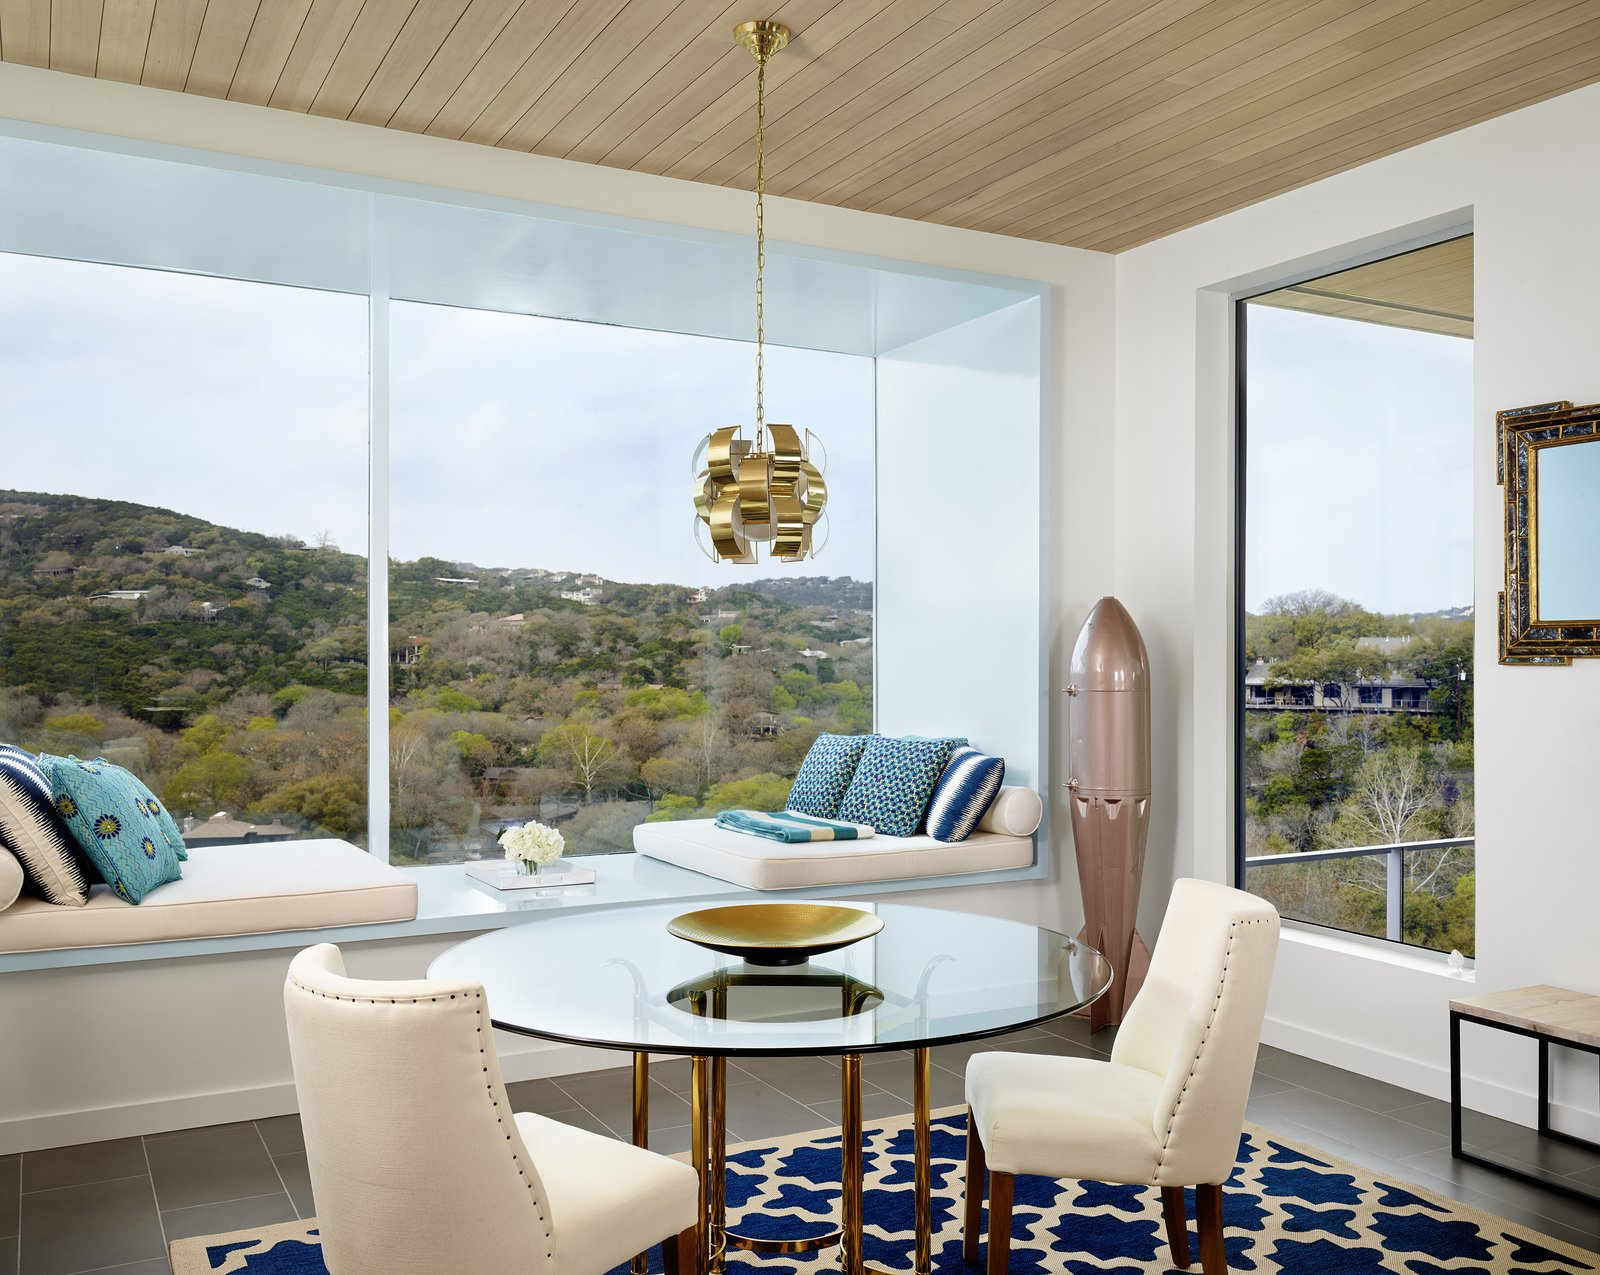 Dining room  Lakeshore Residence by Texas Construction Company